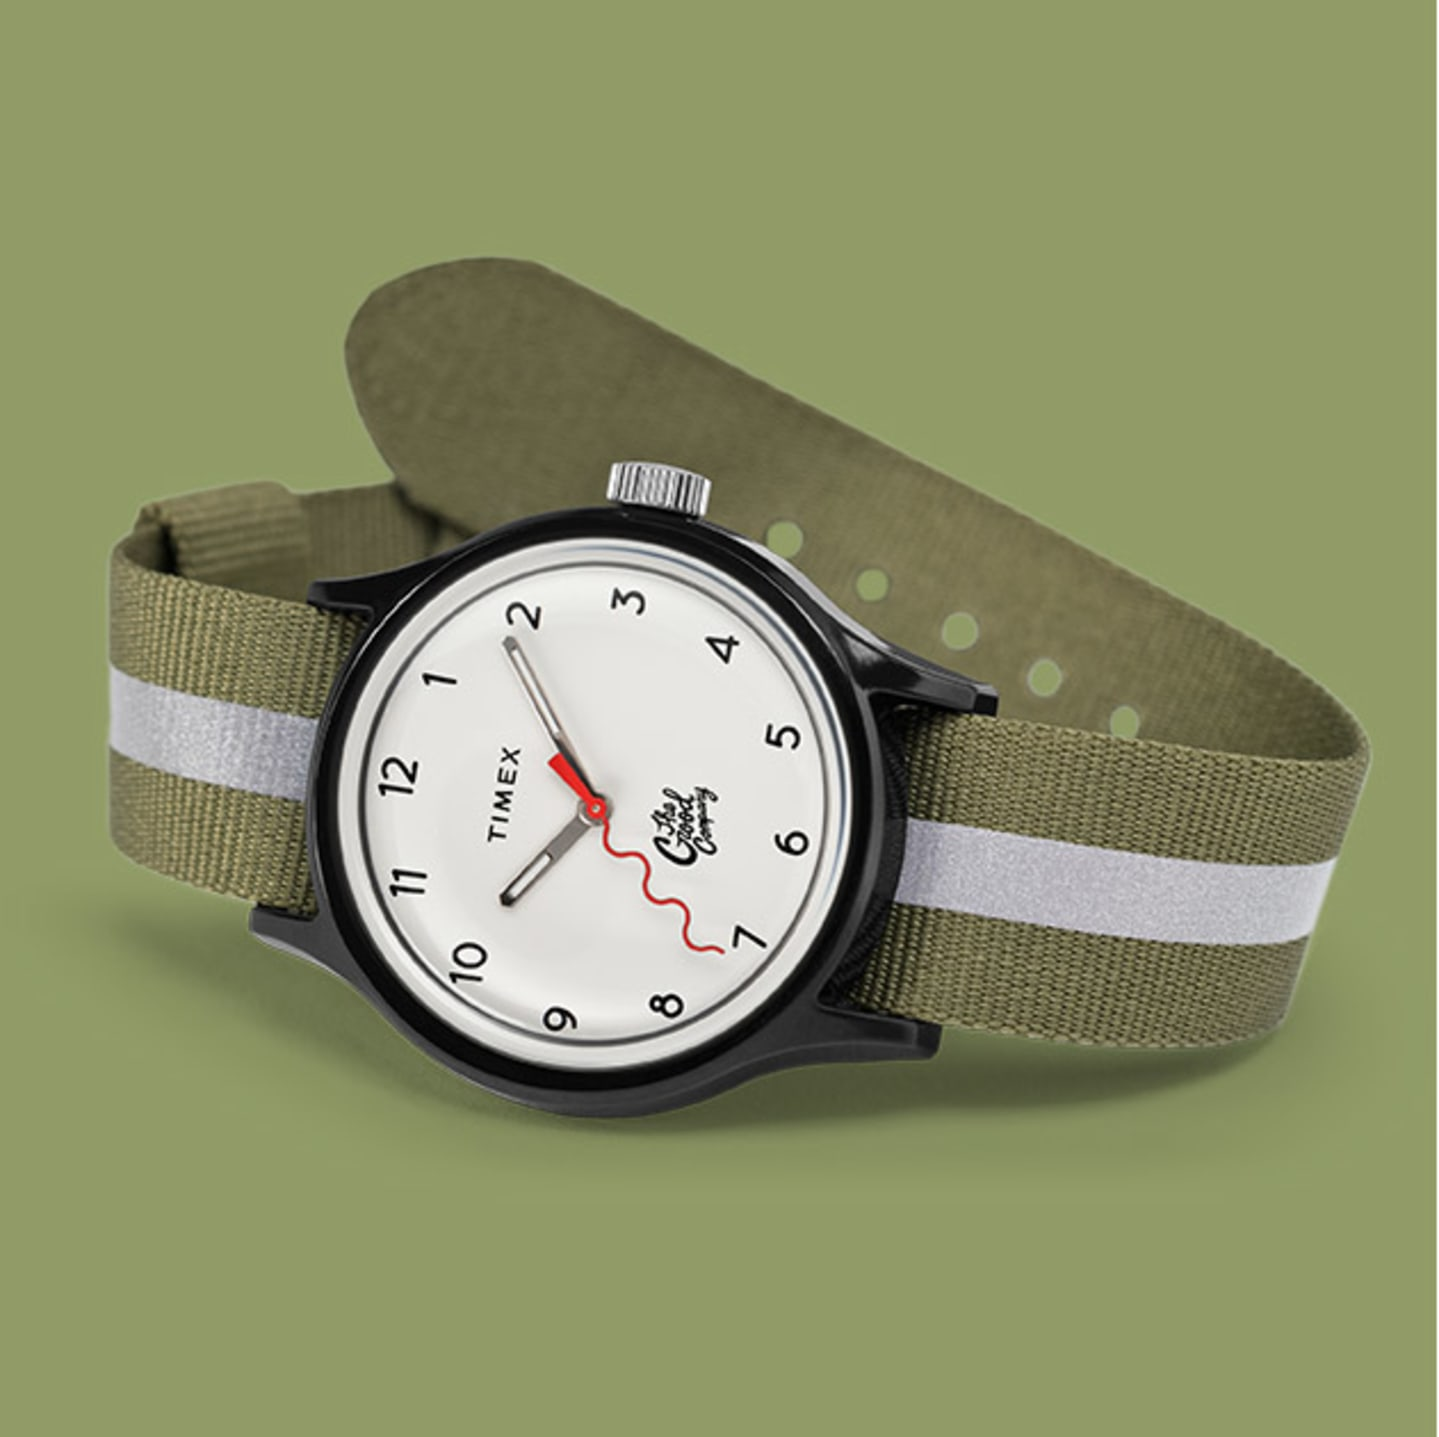 Green and White Strapped Black Body Watch By The Good Company With Red Dial